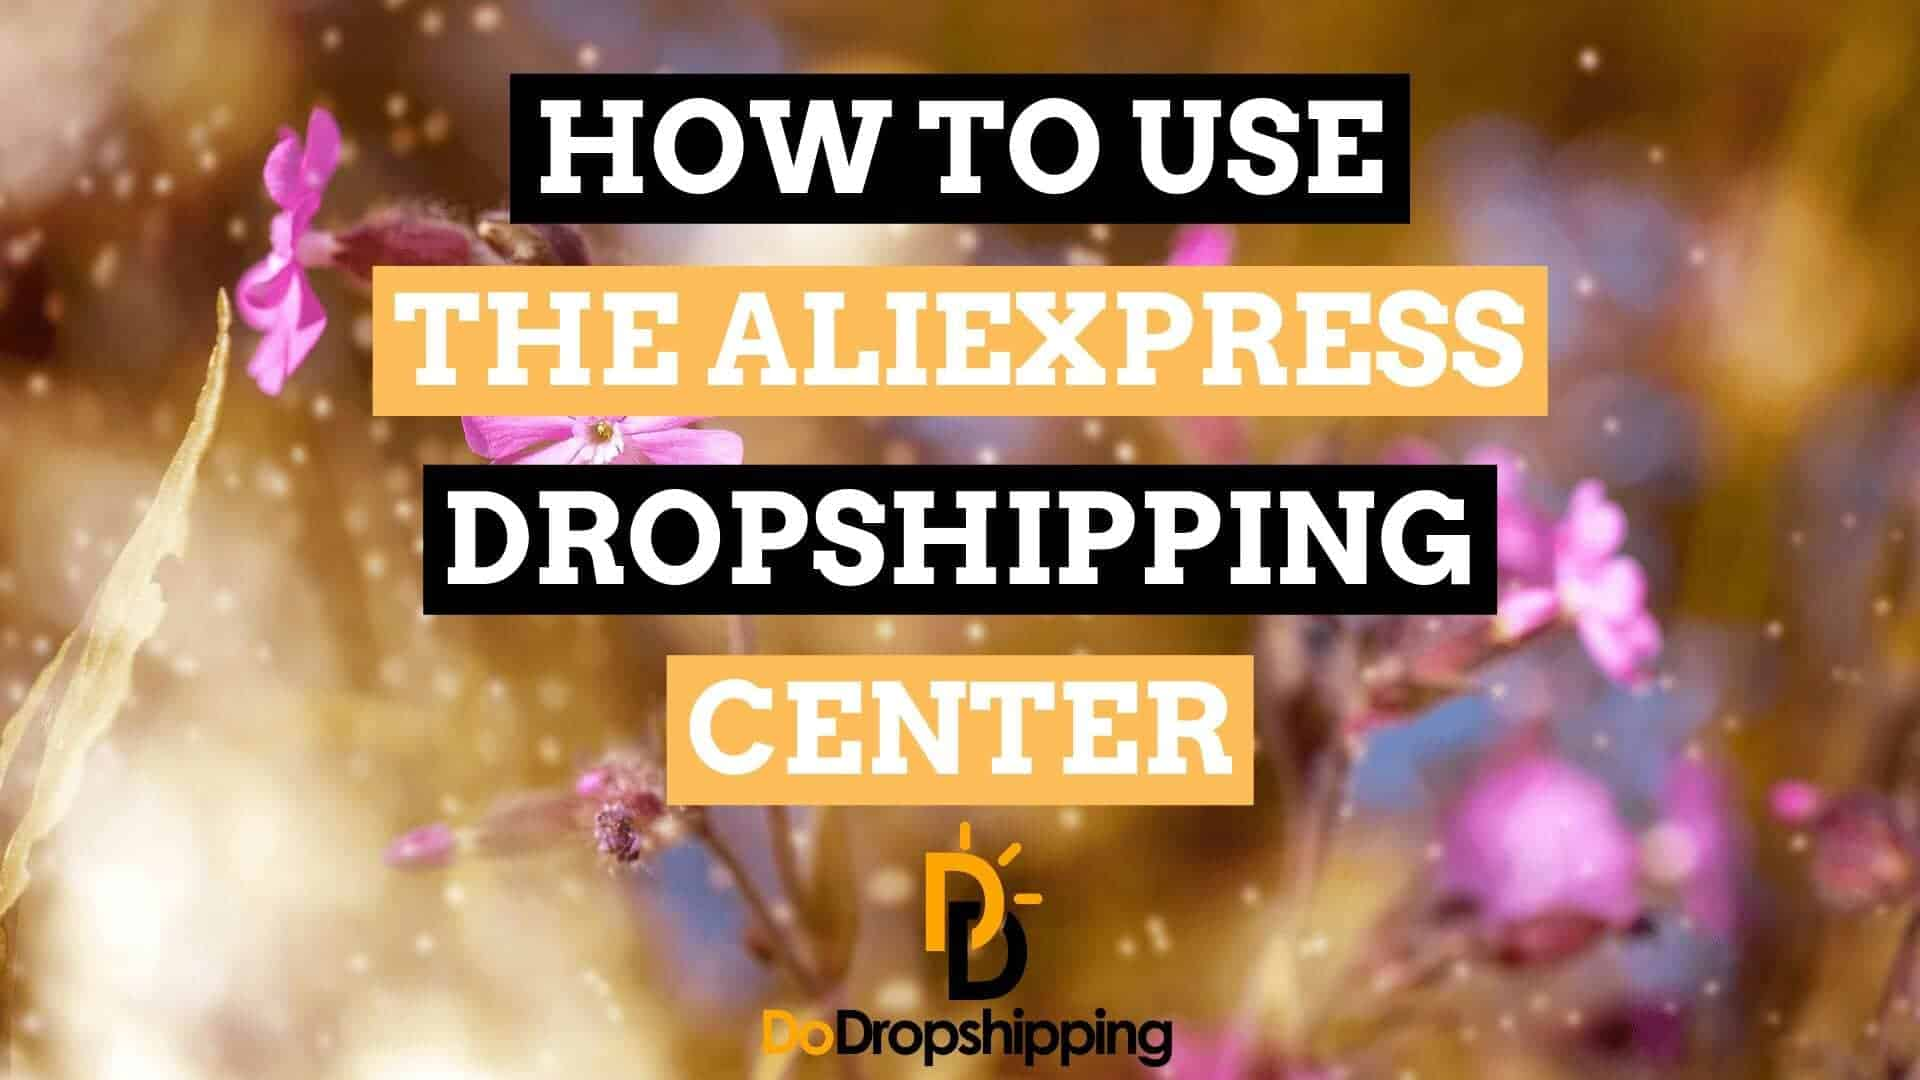 Dropshipping With AliExpress: The AliExpress Dropshipping Center